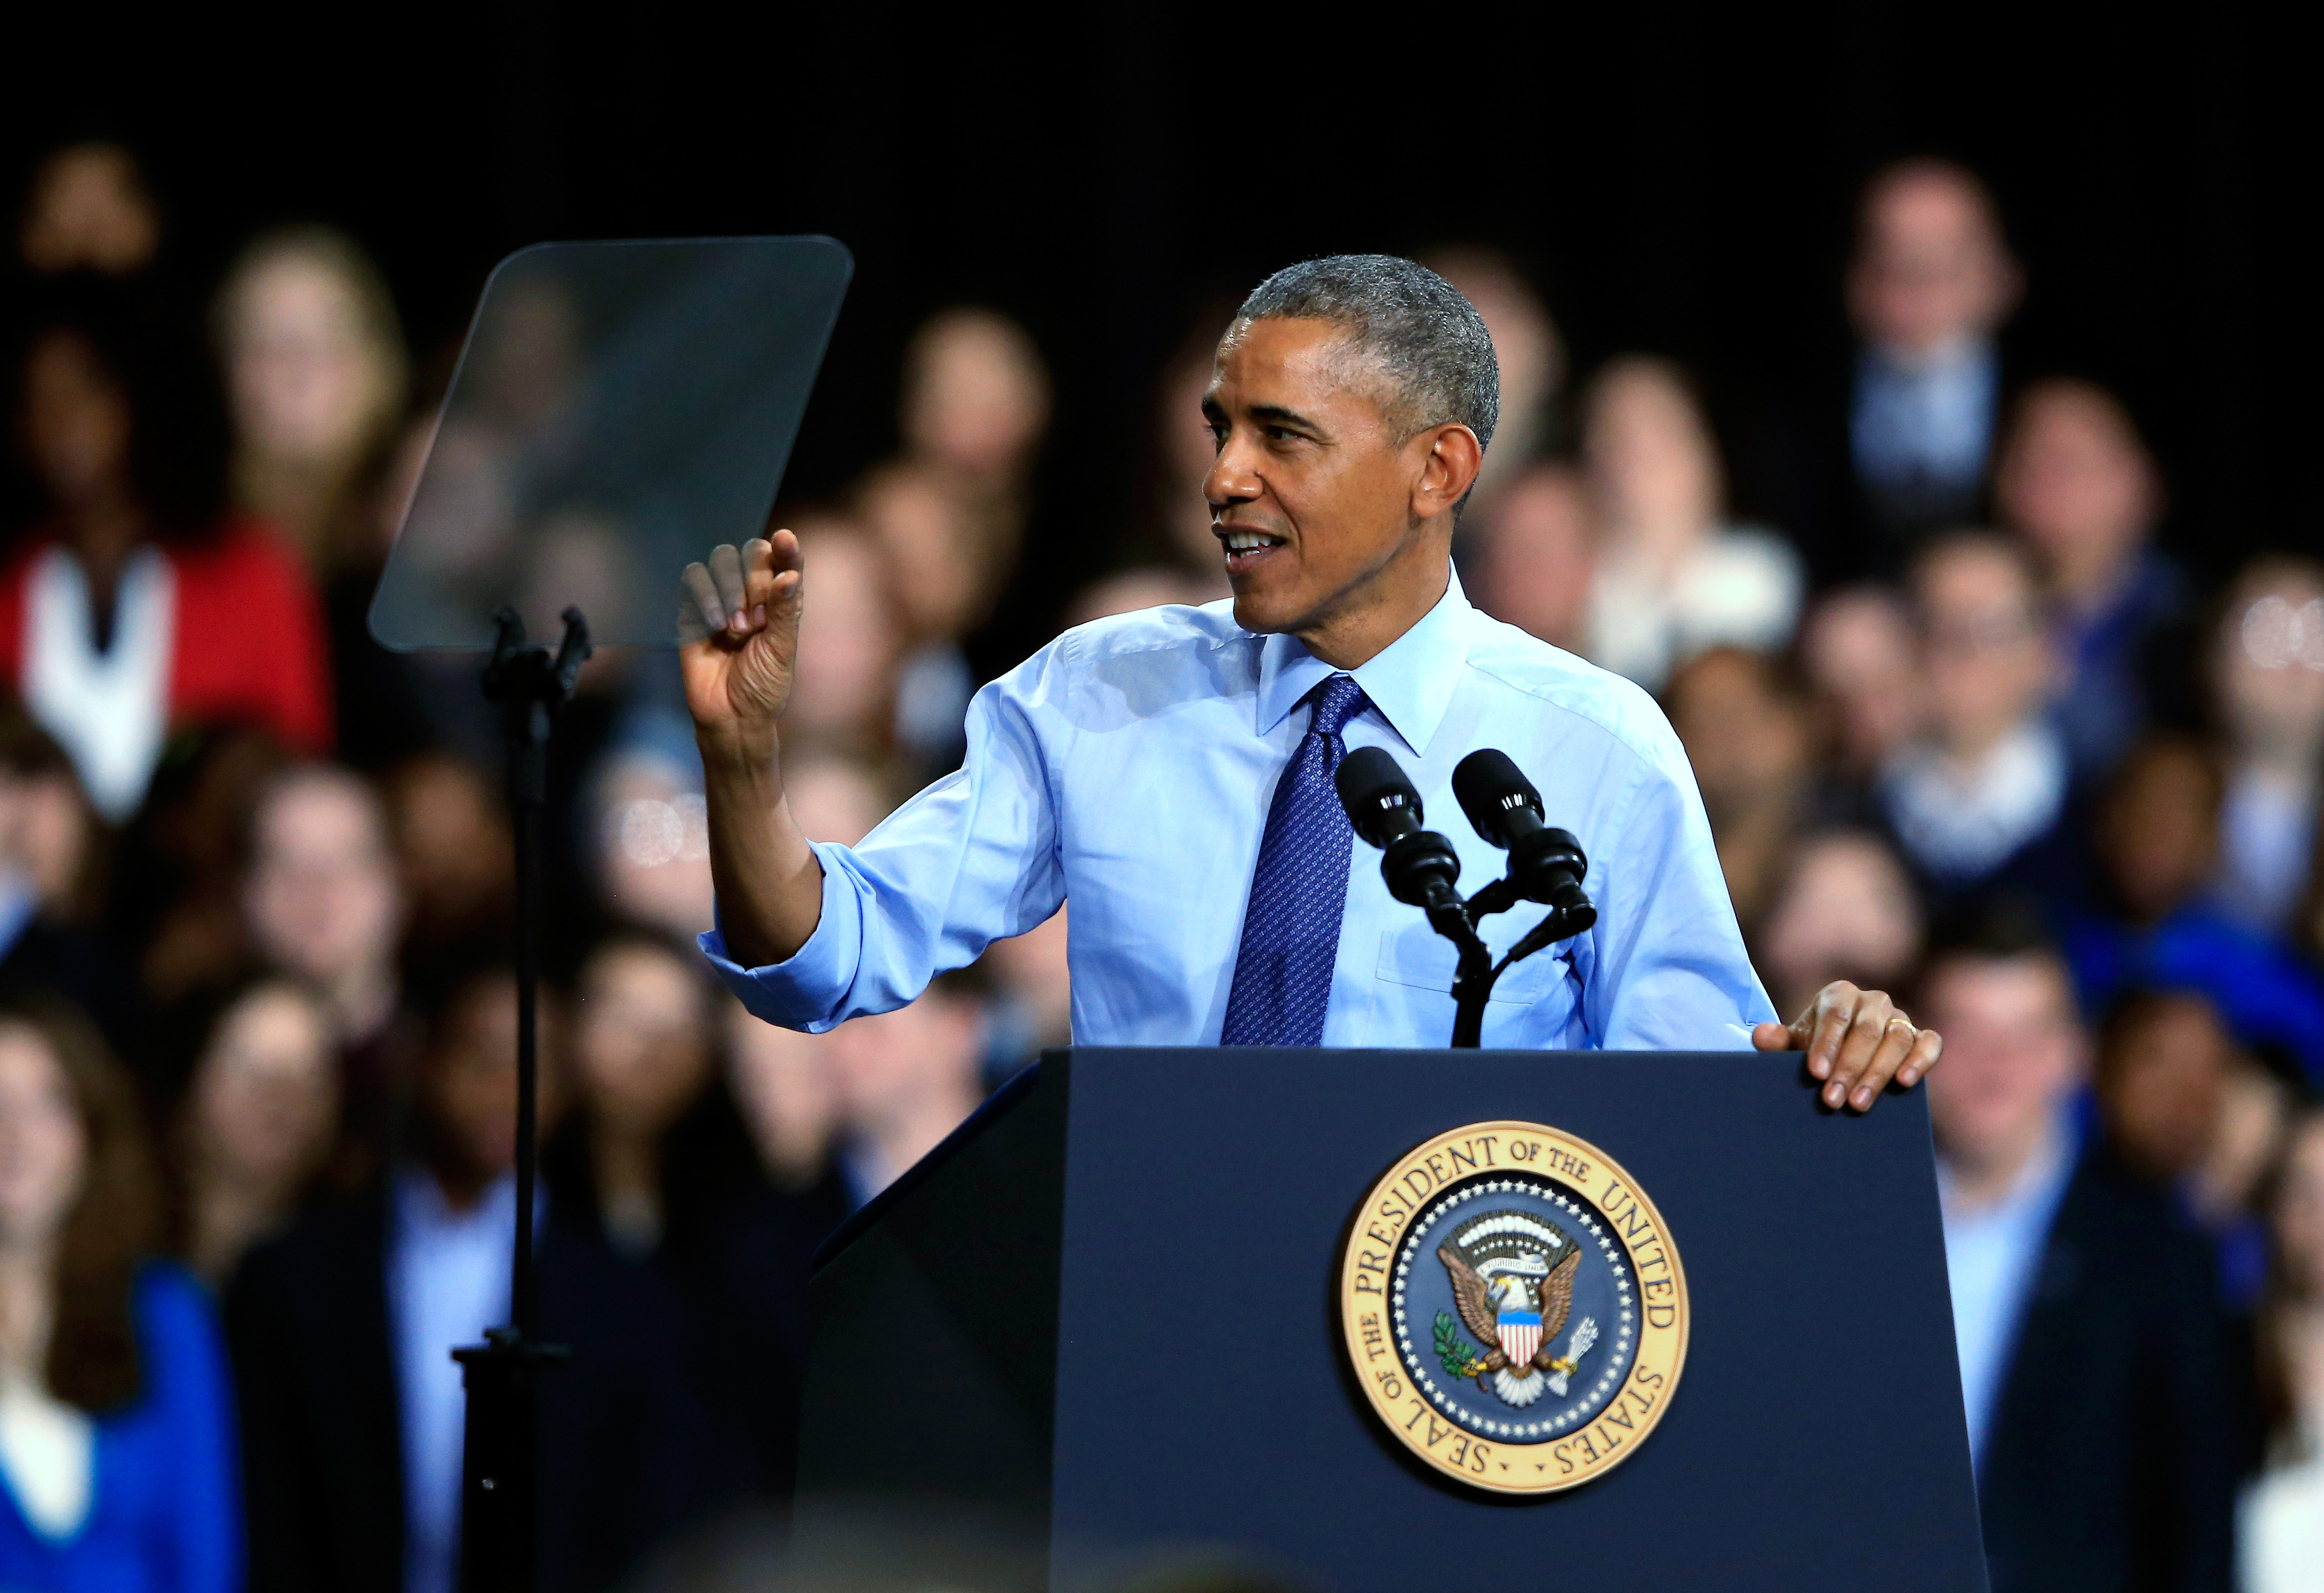 President Obama Speaks At The University Of Kansas